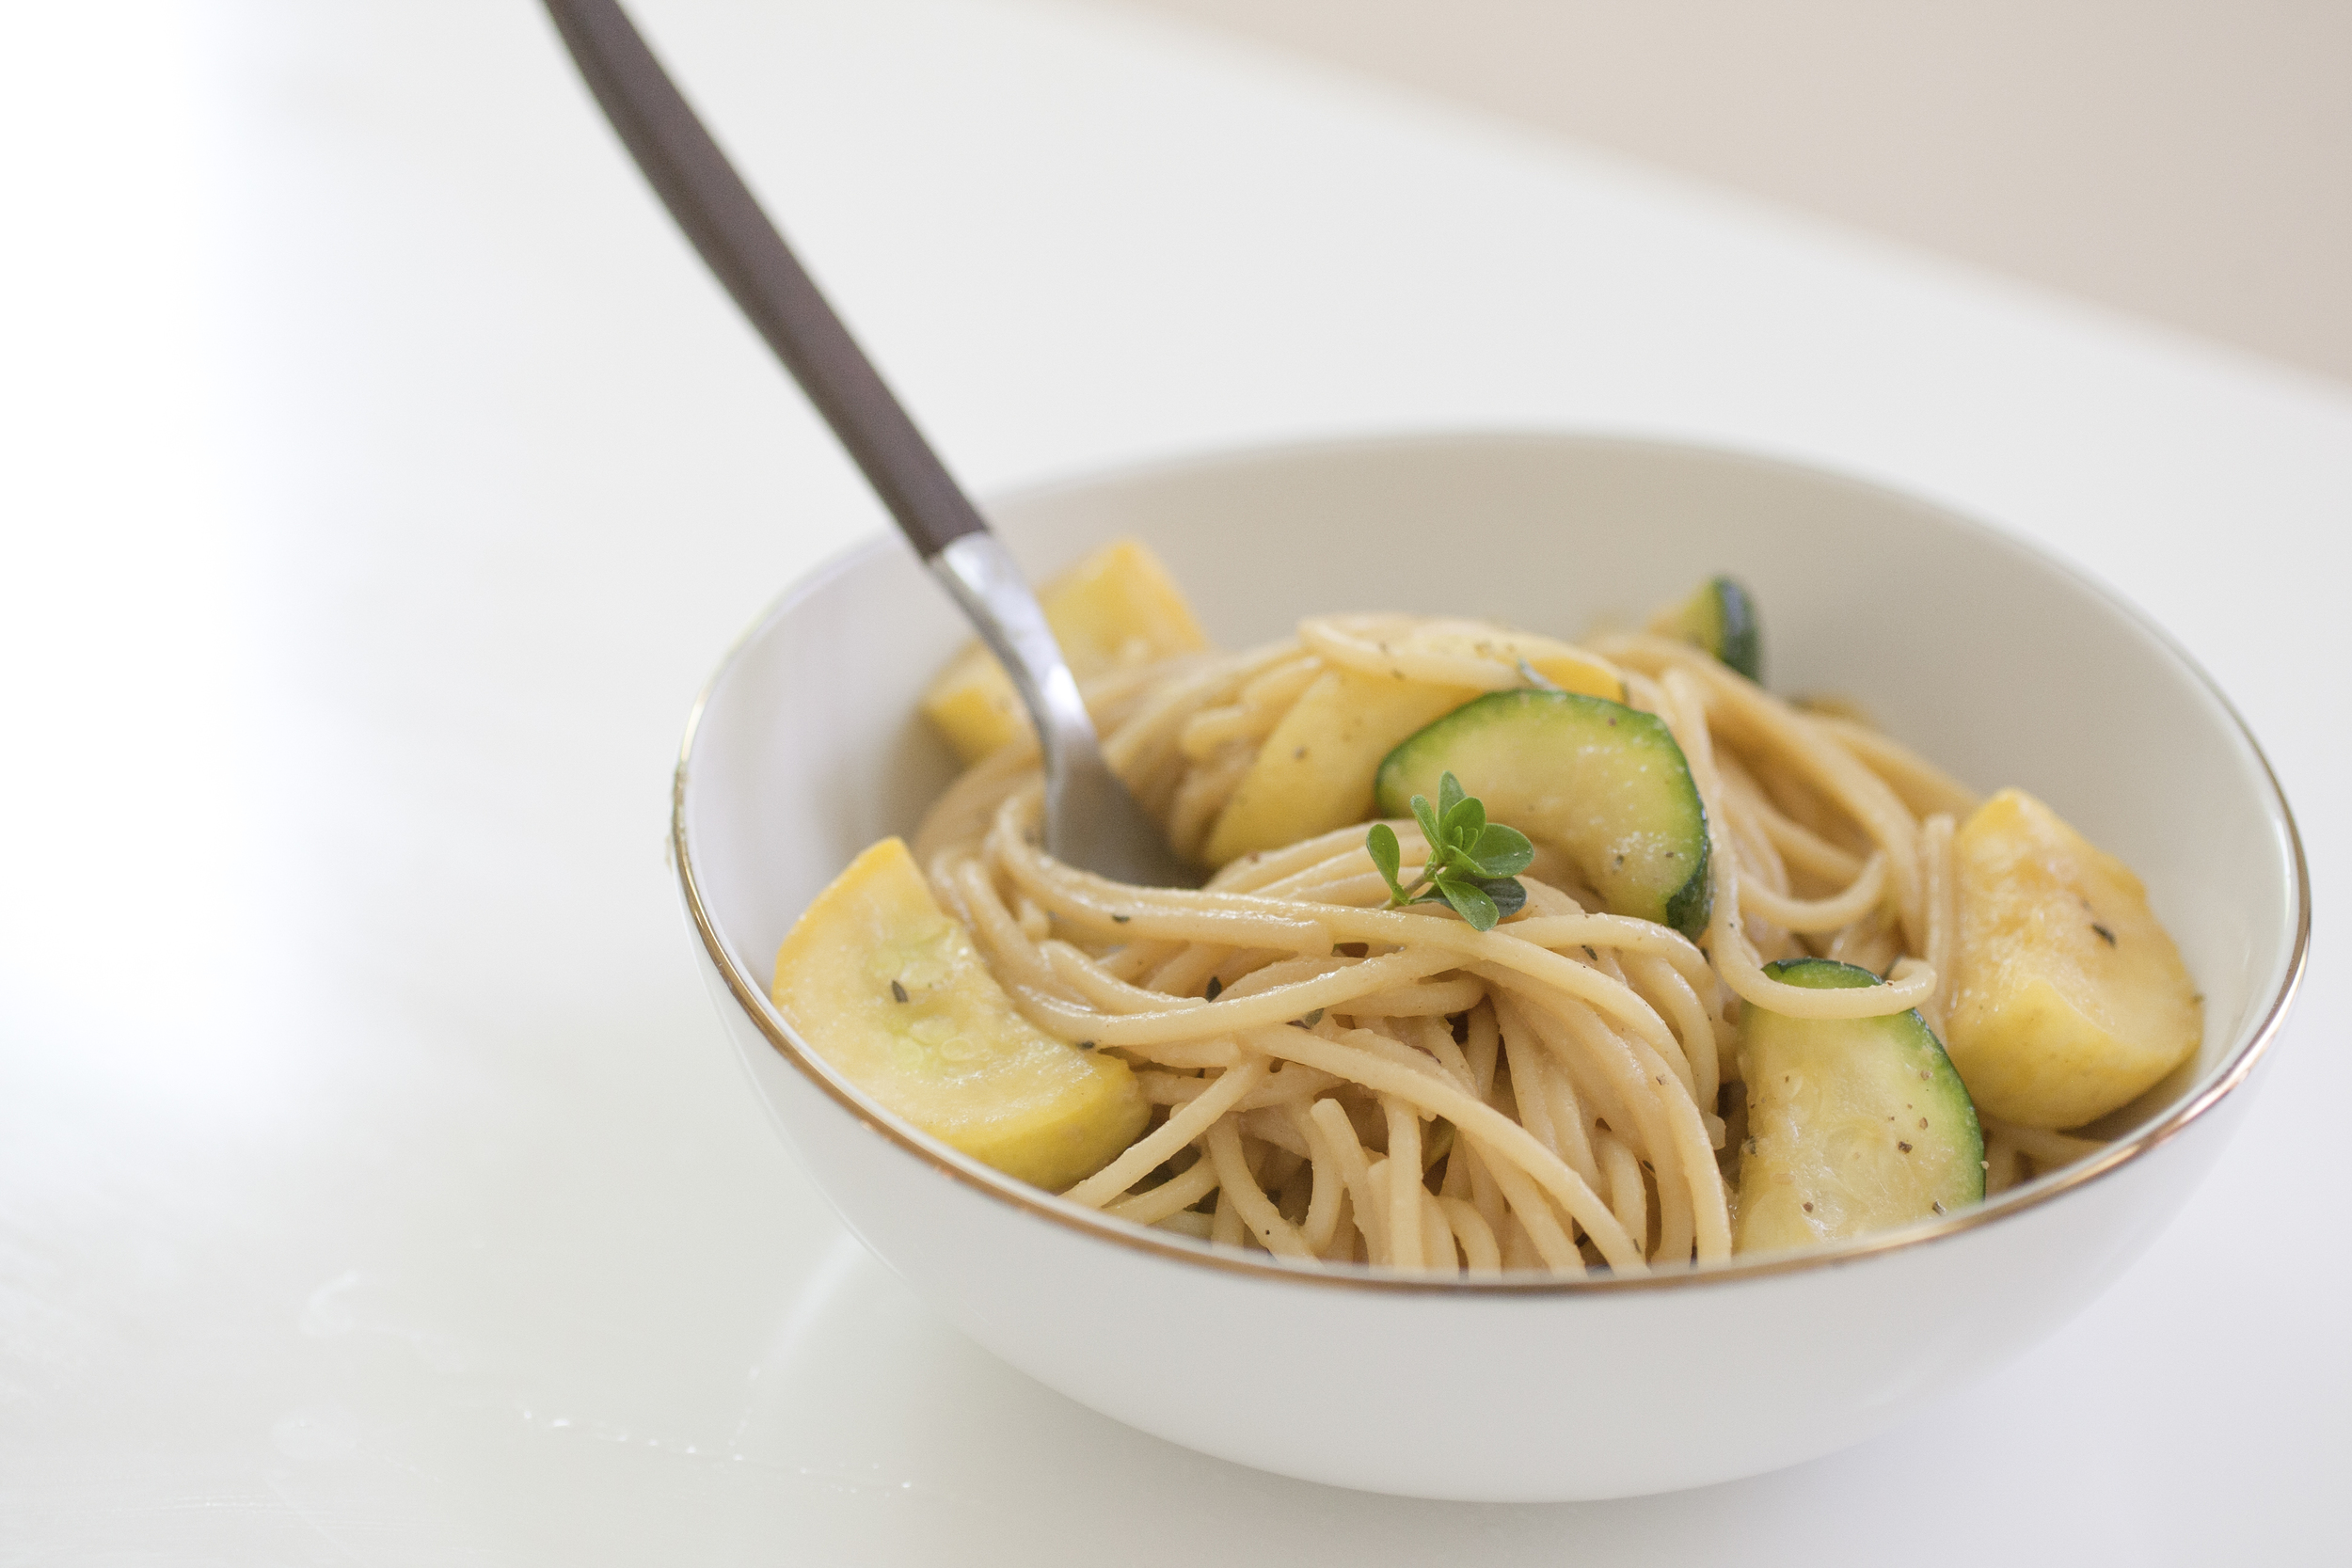 Produce On Parade - Miso Pasta with Summer Squash - This creamy, miso-flavored pasta pairs perfectly with tender summer squash with notes of garlic, thyme, and cheese. Dinner is done in the time it takes to boil the noodles!